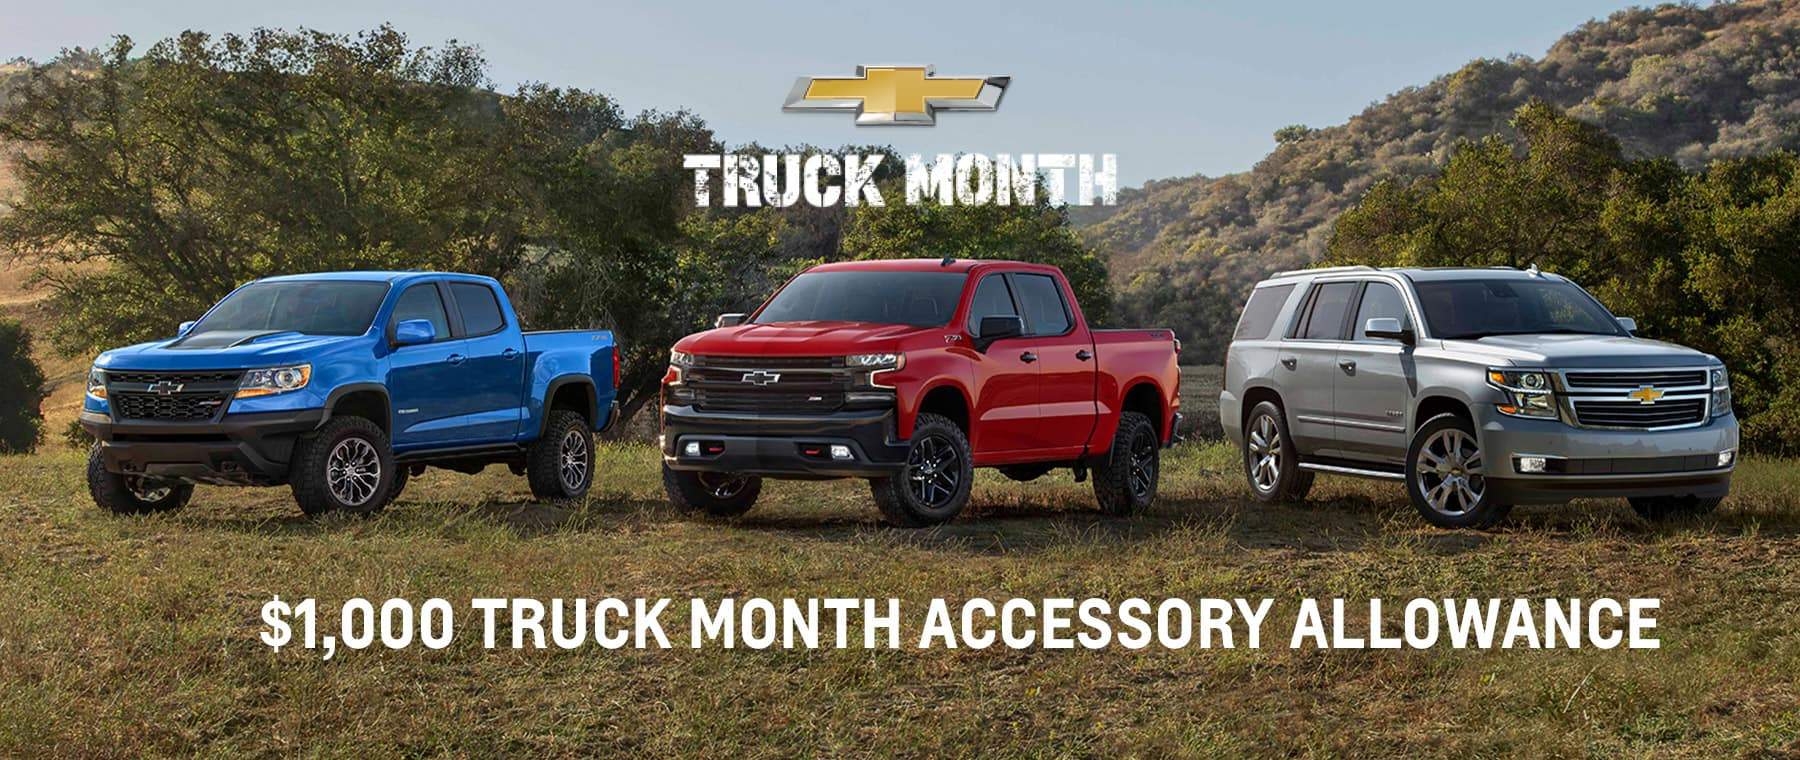 Truck Month at Coyle Automotive this October in Clarksville, Indiana